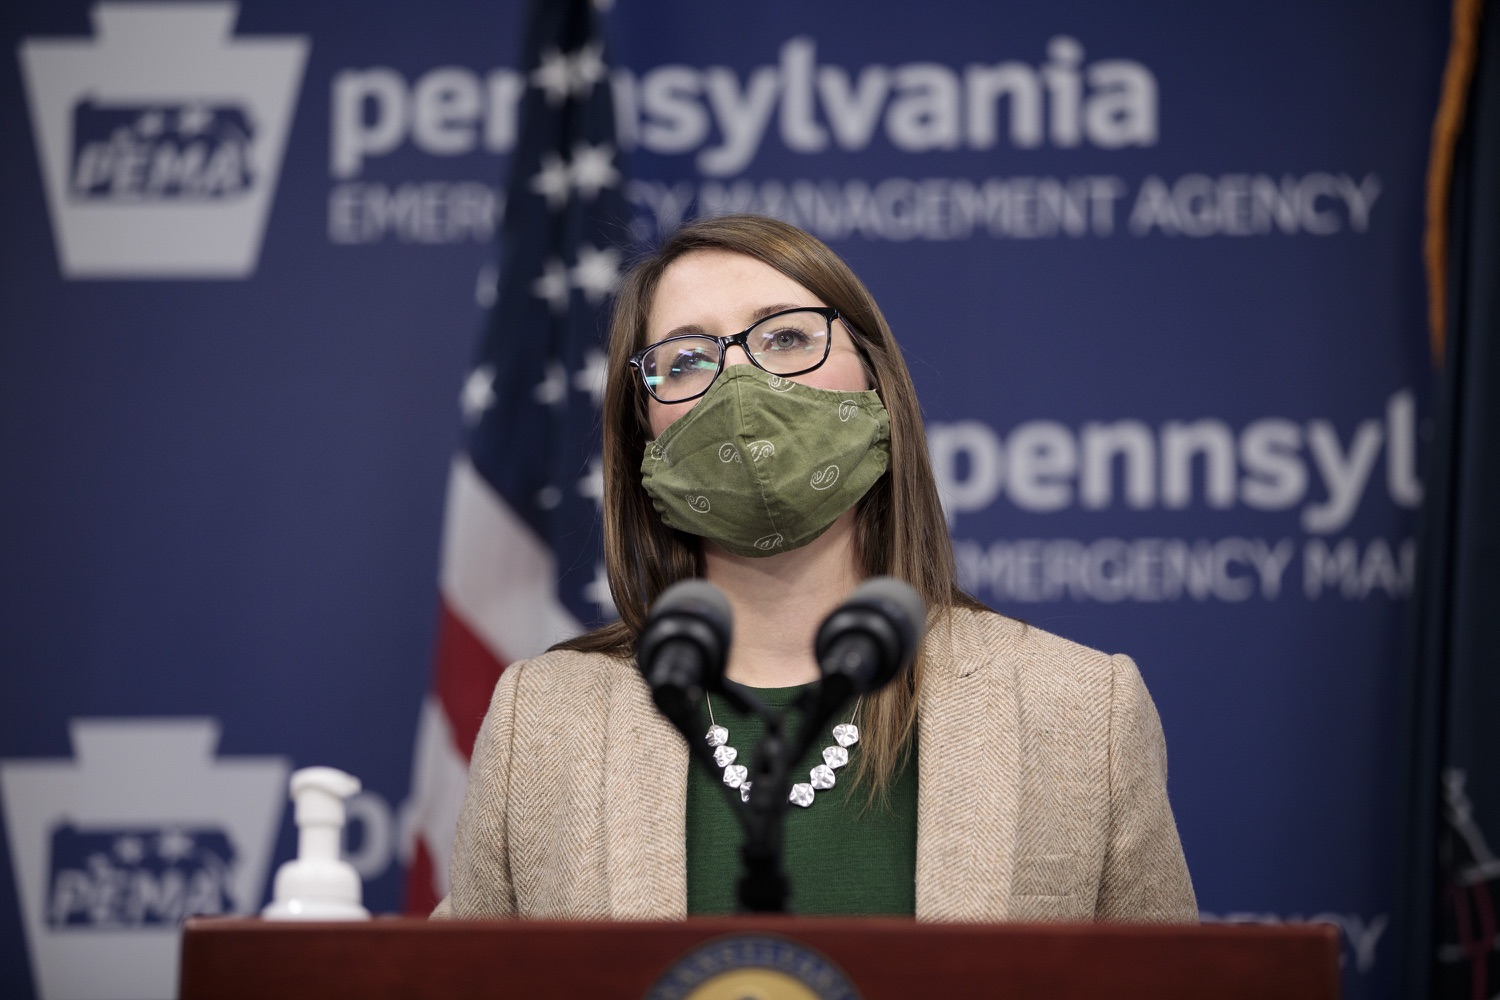 """<a href=""""https://filesource.wostreaming.net/commonwealthofpa/photo/18524_doh_vaccine_dz_12.JPG"""" target=""""_blank"""">⇣Download Photo<br></a>Department of Health Senior Advisor Lindsey Mauldin speaking at the press conference.  The Pennsylvania Department of Health today launched a new tool called Your Turn to help Pennsylvanians understand where they fall in the vaccine prioritization effort and to be alerted when it is their turn to schedule an appointment for the COVID-19 vaccine.  Harrisburg, PA  February 9, 2021"""